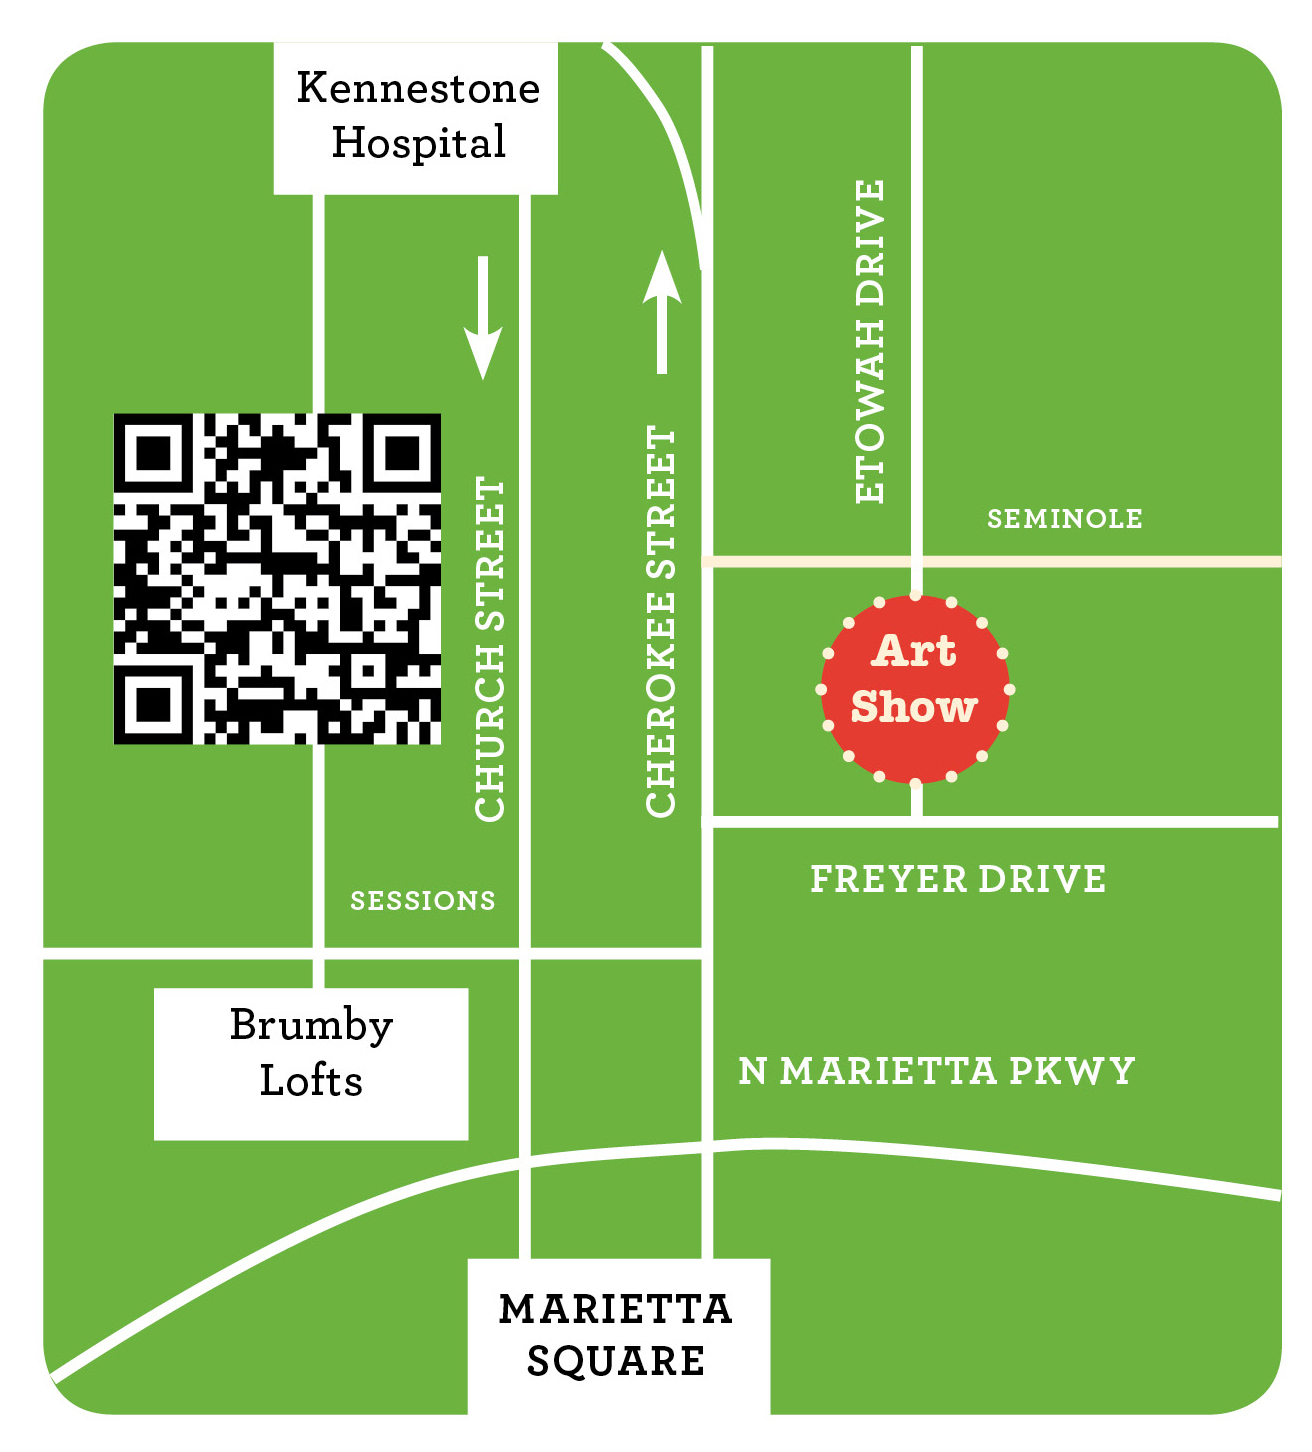 Events — The Minted Market on roswell hospital map, gwinnett medical center hospital map, cobb hospital map, wellstar hospital map, cobb galleria map, st. joseph hospital atlanta ga map, grant hospital map, kennesaw hospital map, hospitals in augusta ga map,